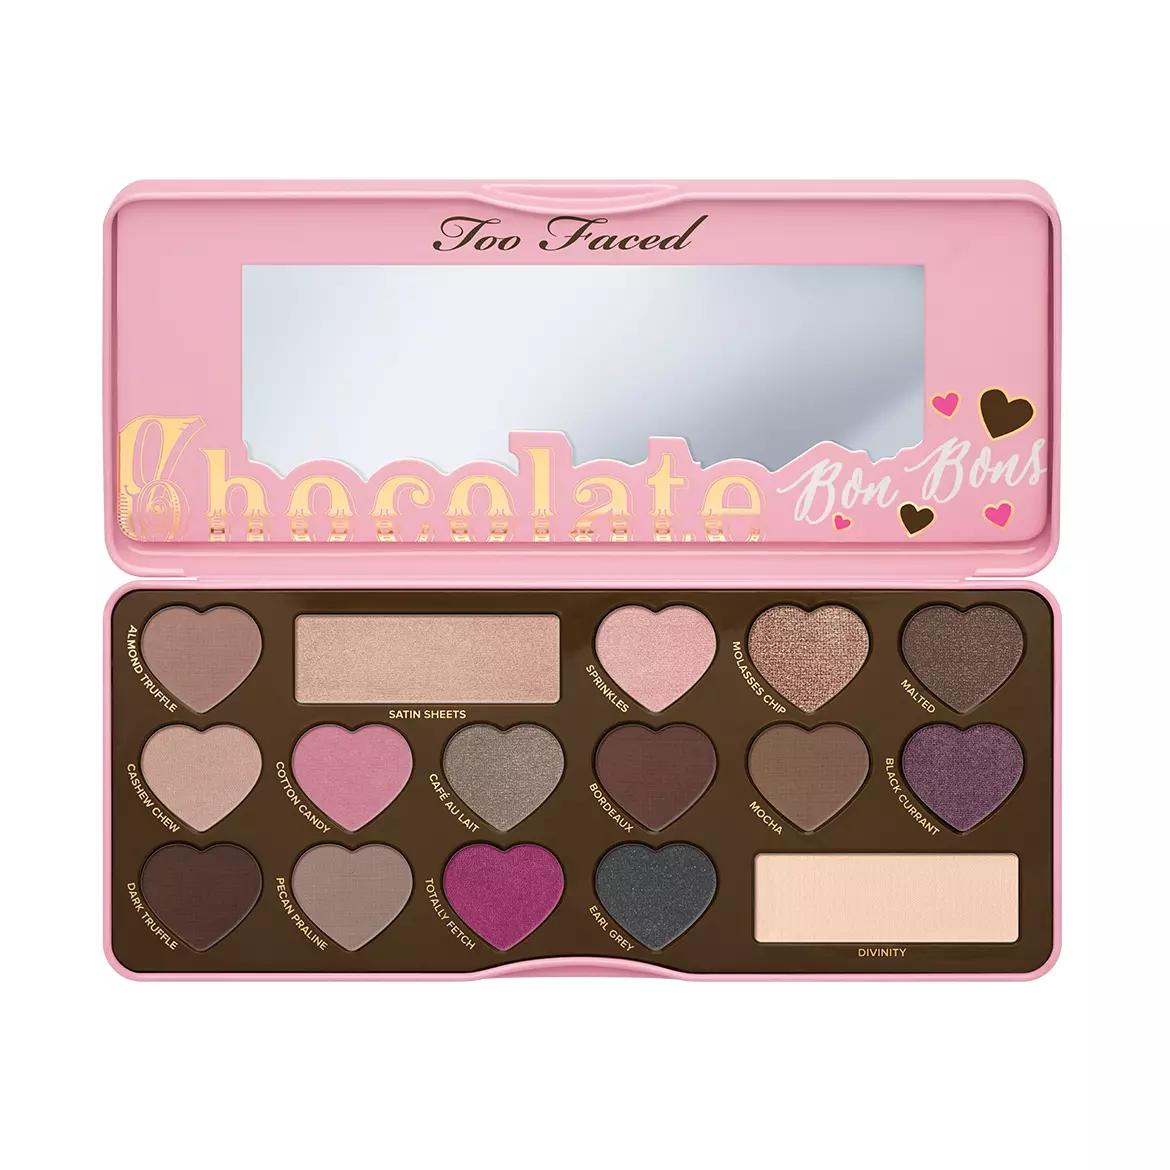 2nd Chance Too Faced Chocolate Bon Bons Palette